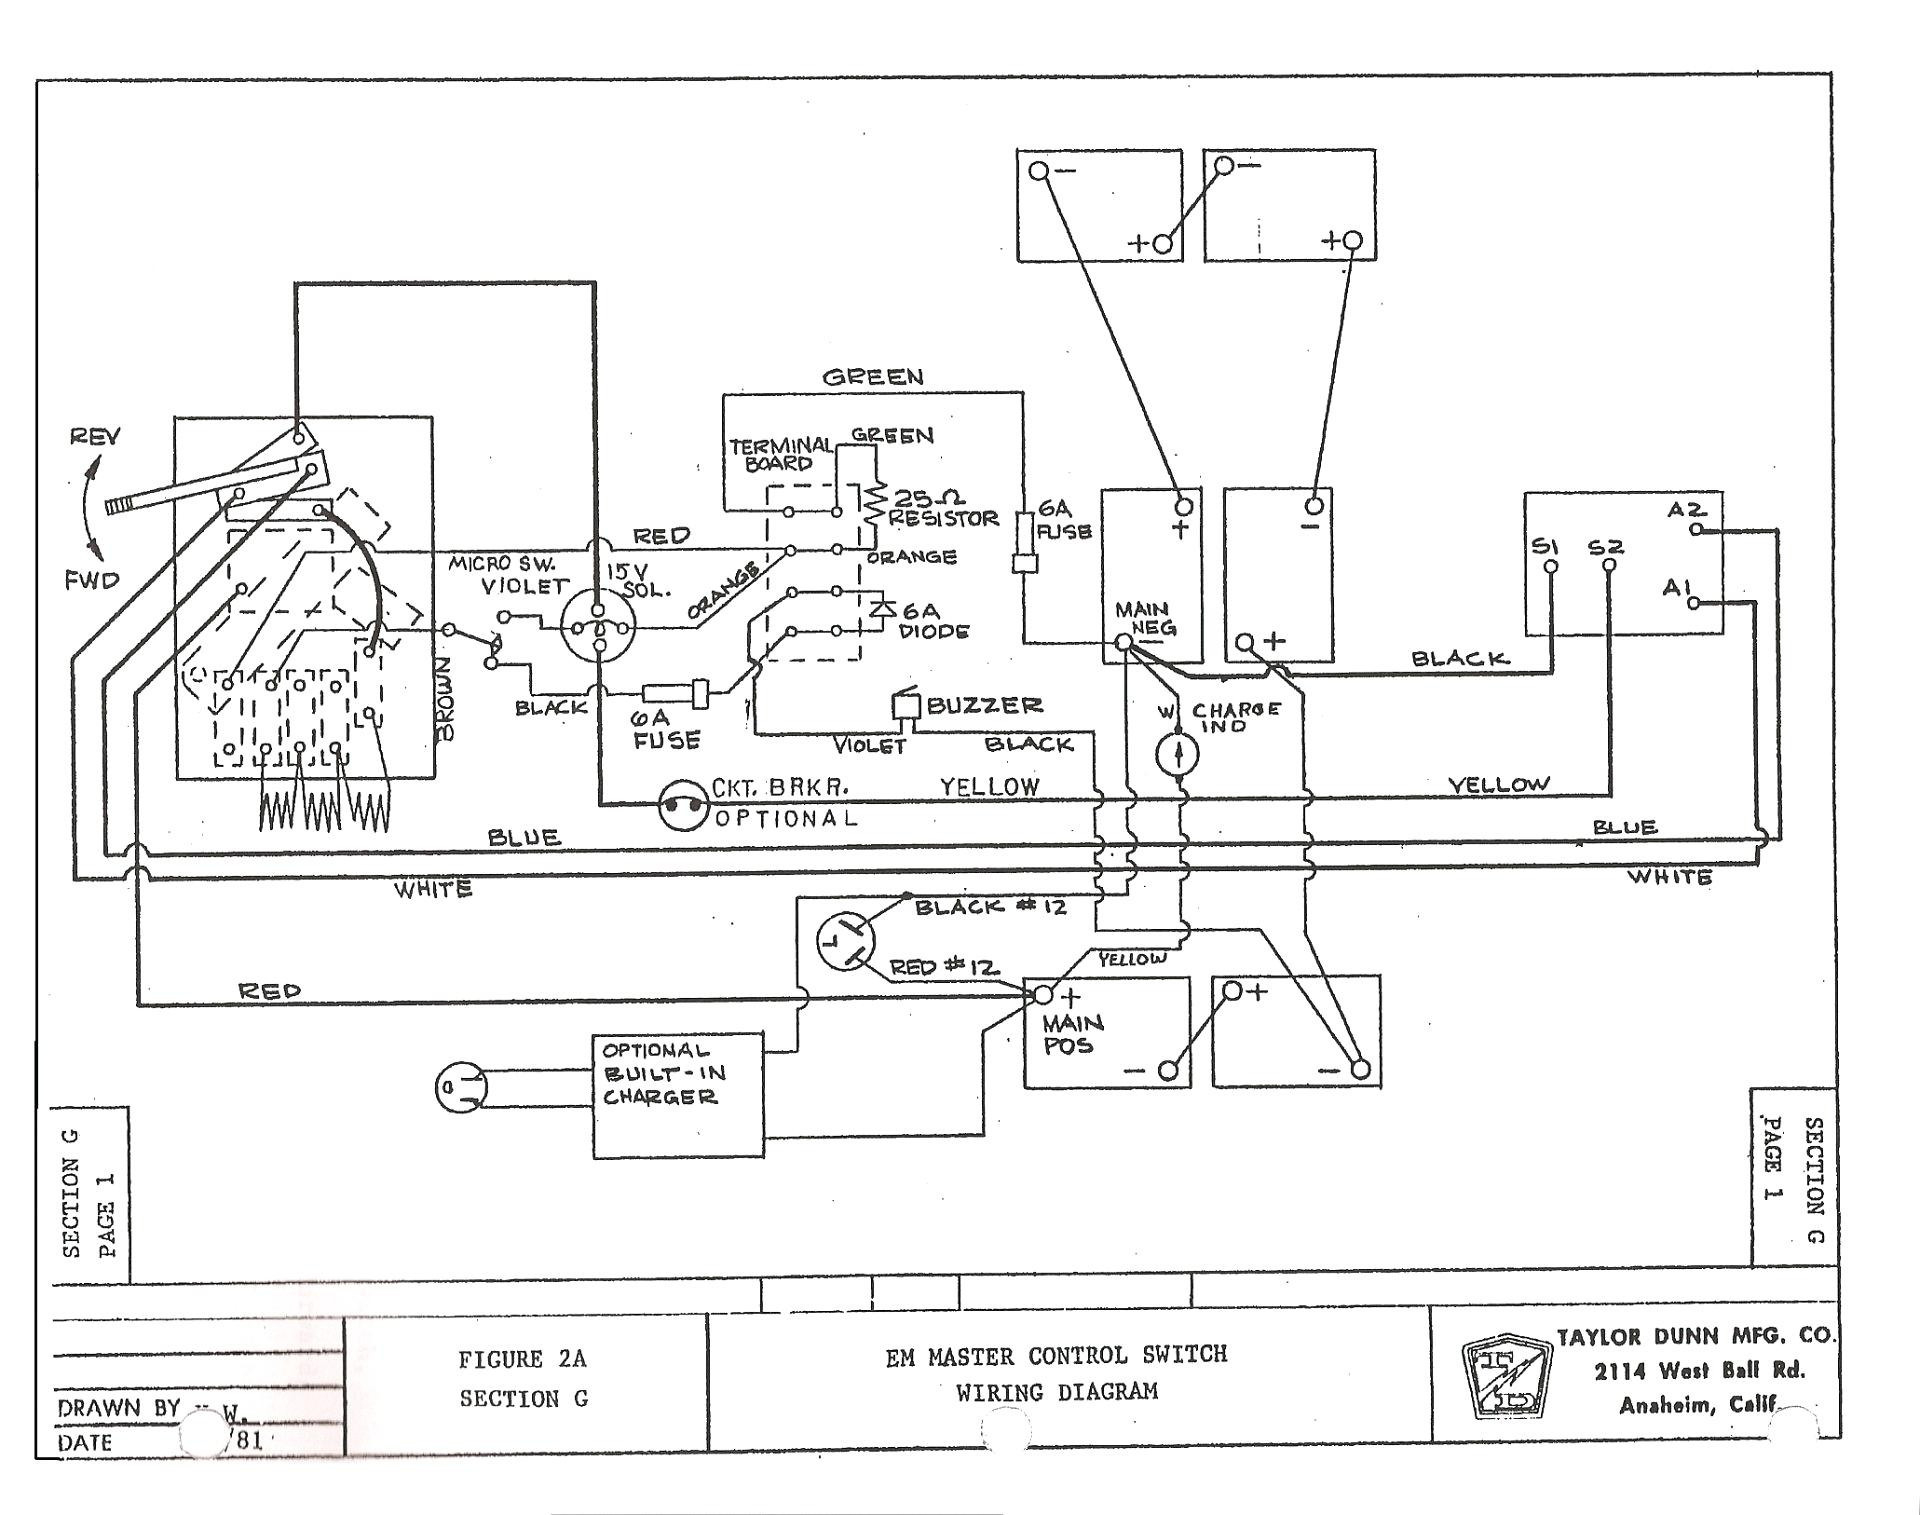 Wiring Diagram 2005 Ezgo Gas Golf Cart Wiring Diagram Complete Complete Lionsclubviterbo It